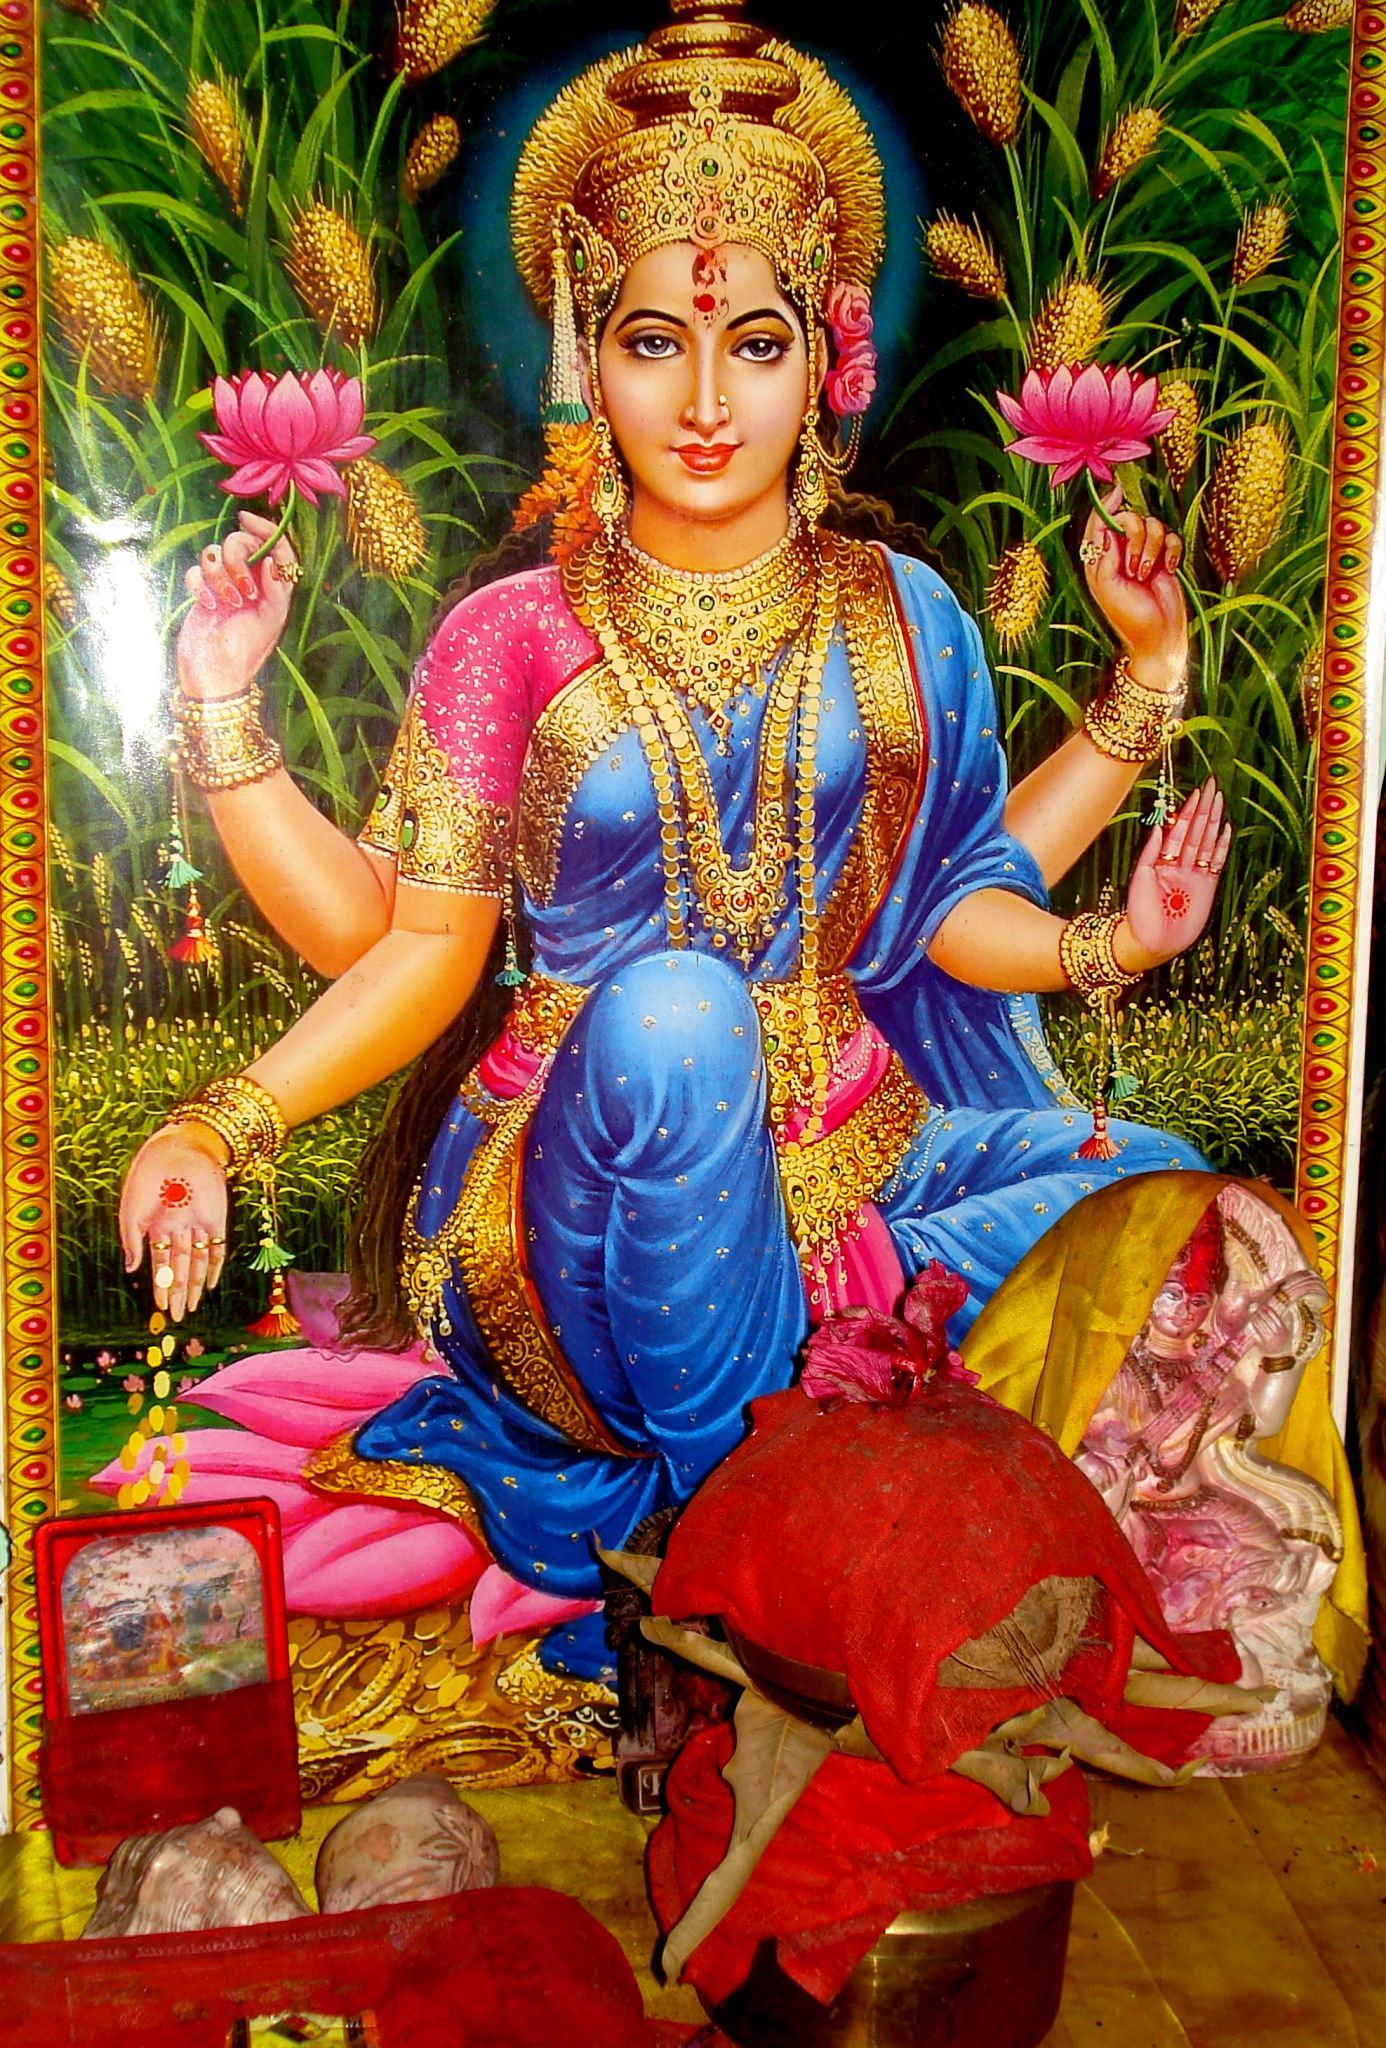 Wonderful Wallpaper Lord Devi - b71e84c343b655e9c9a299c376c82329  Image_734850.jpg